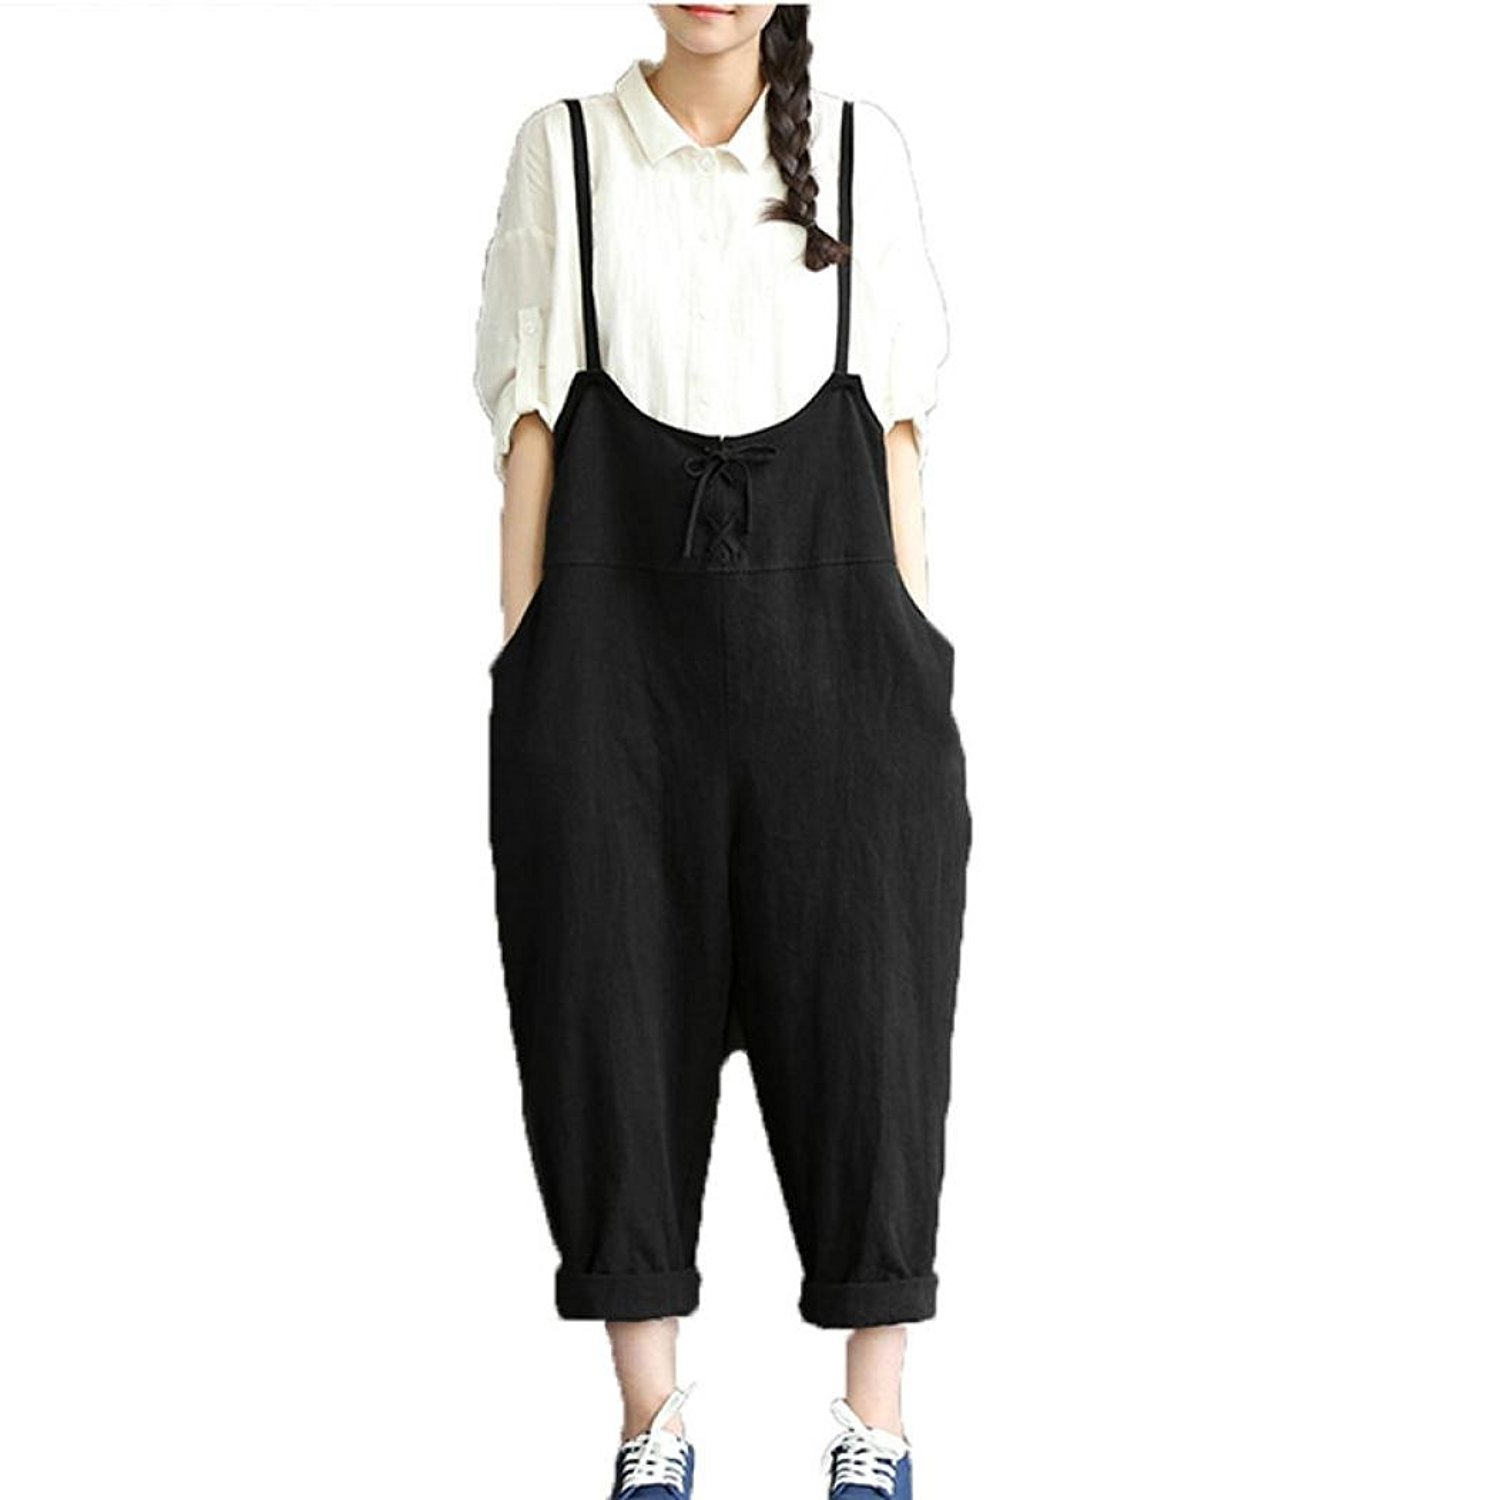 971ddb5c7b1 Get Quotations · Overalls for Women